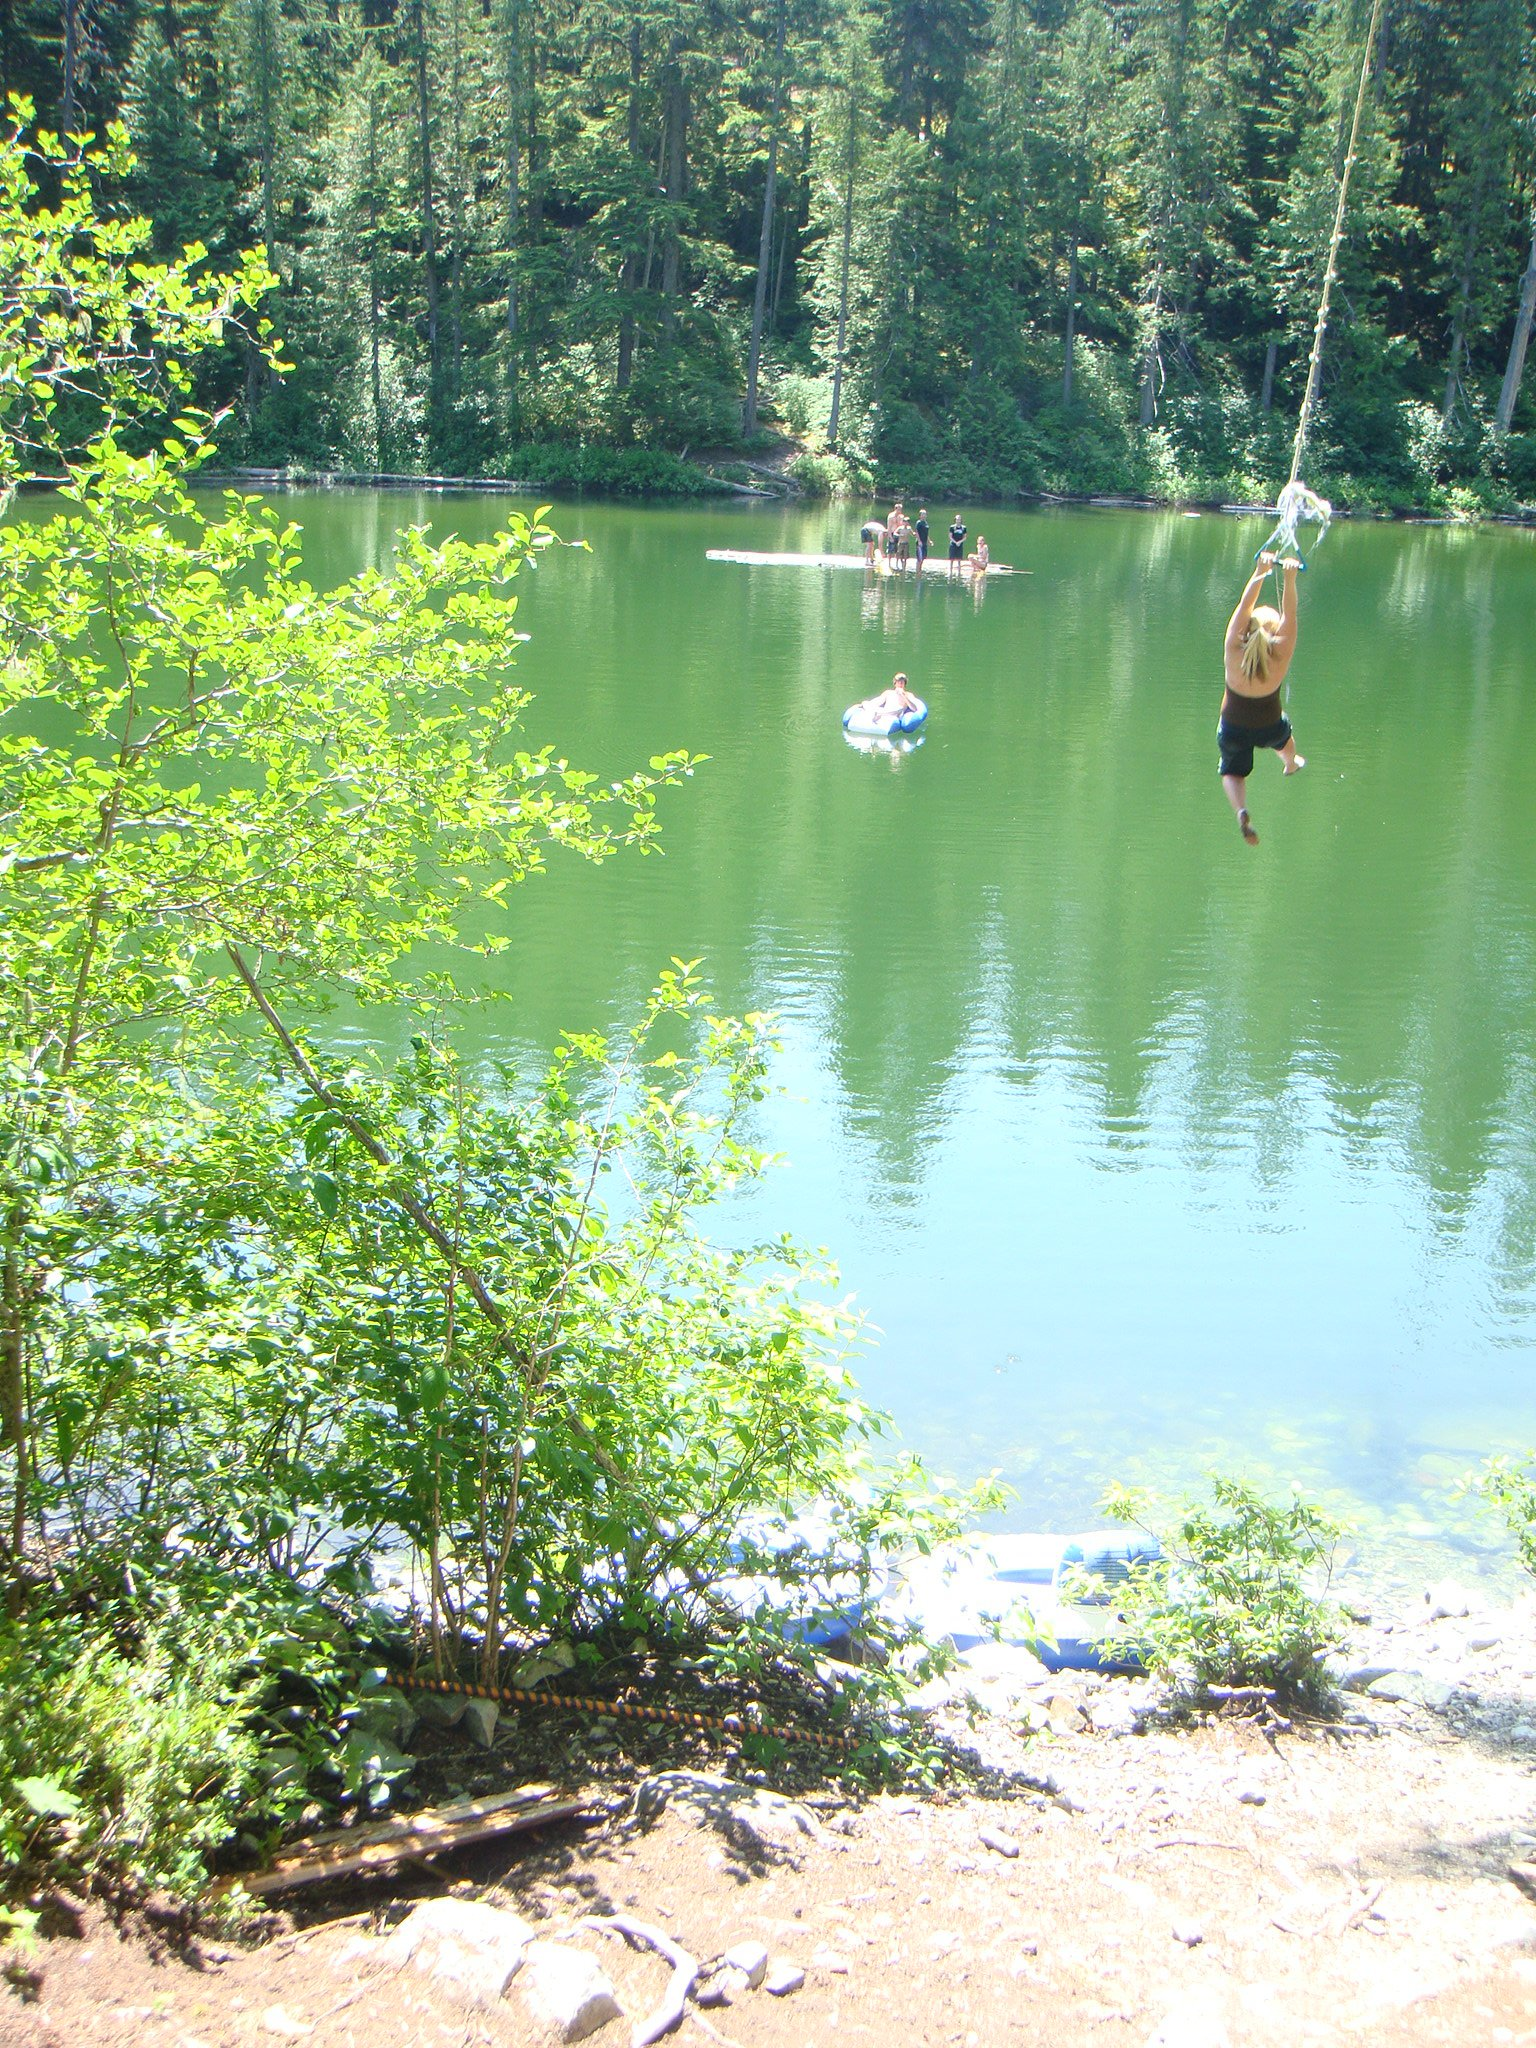 One duck rope swing